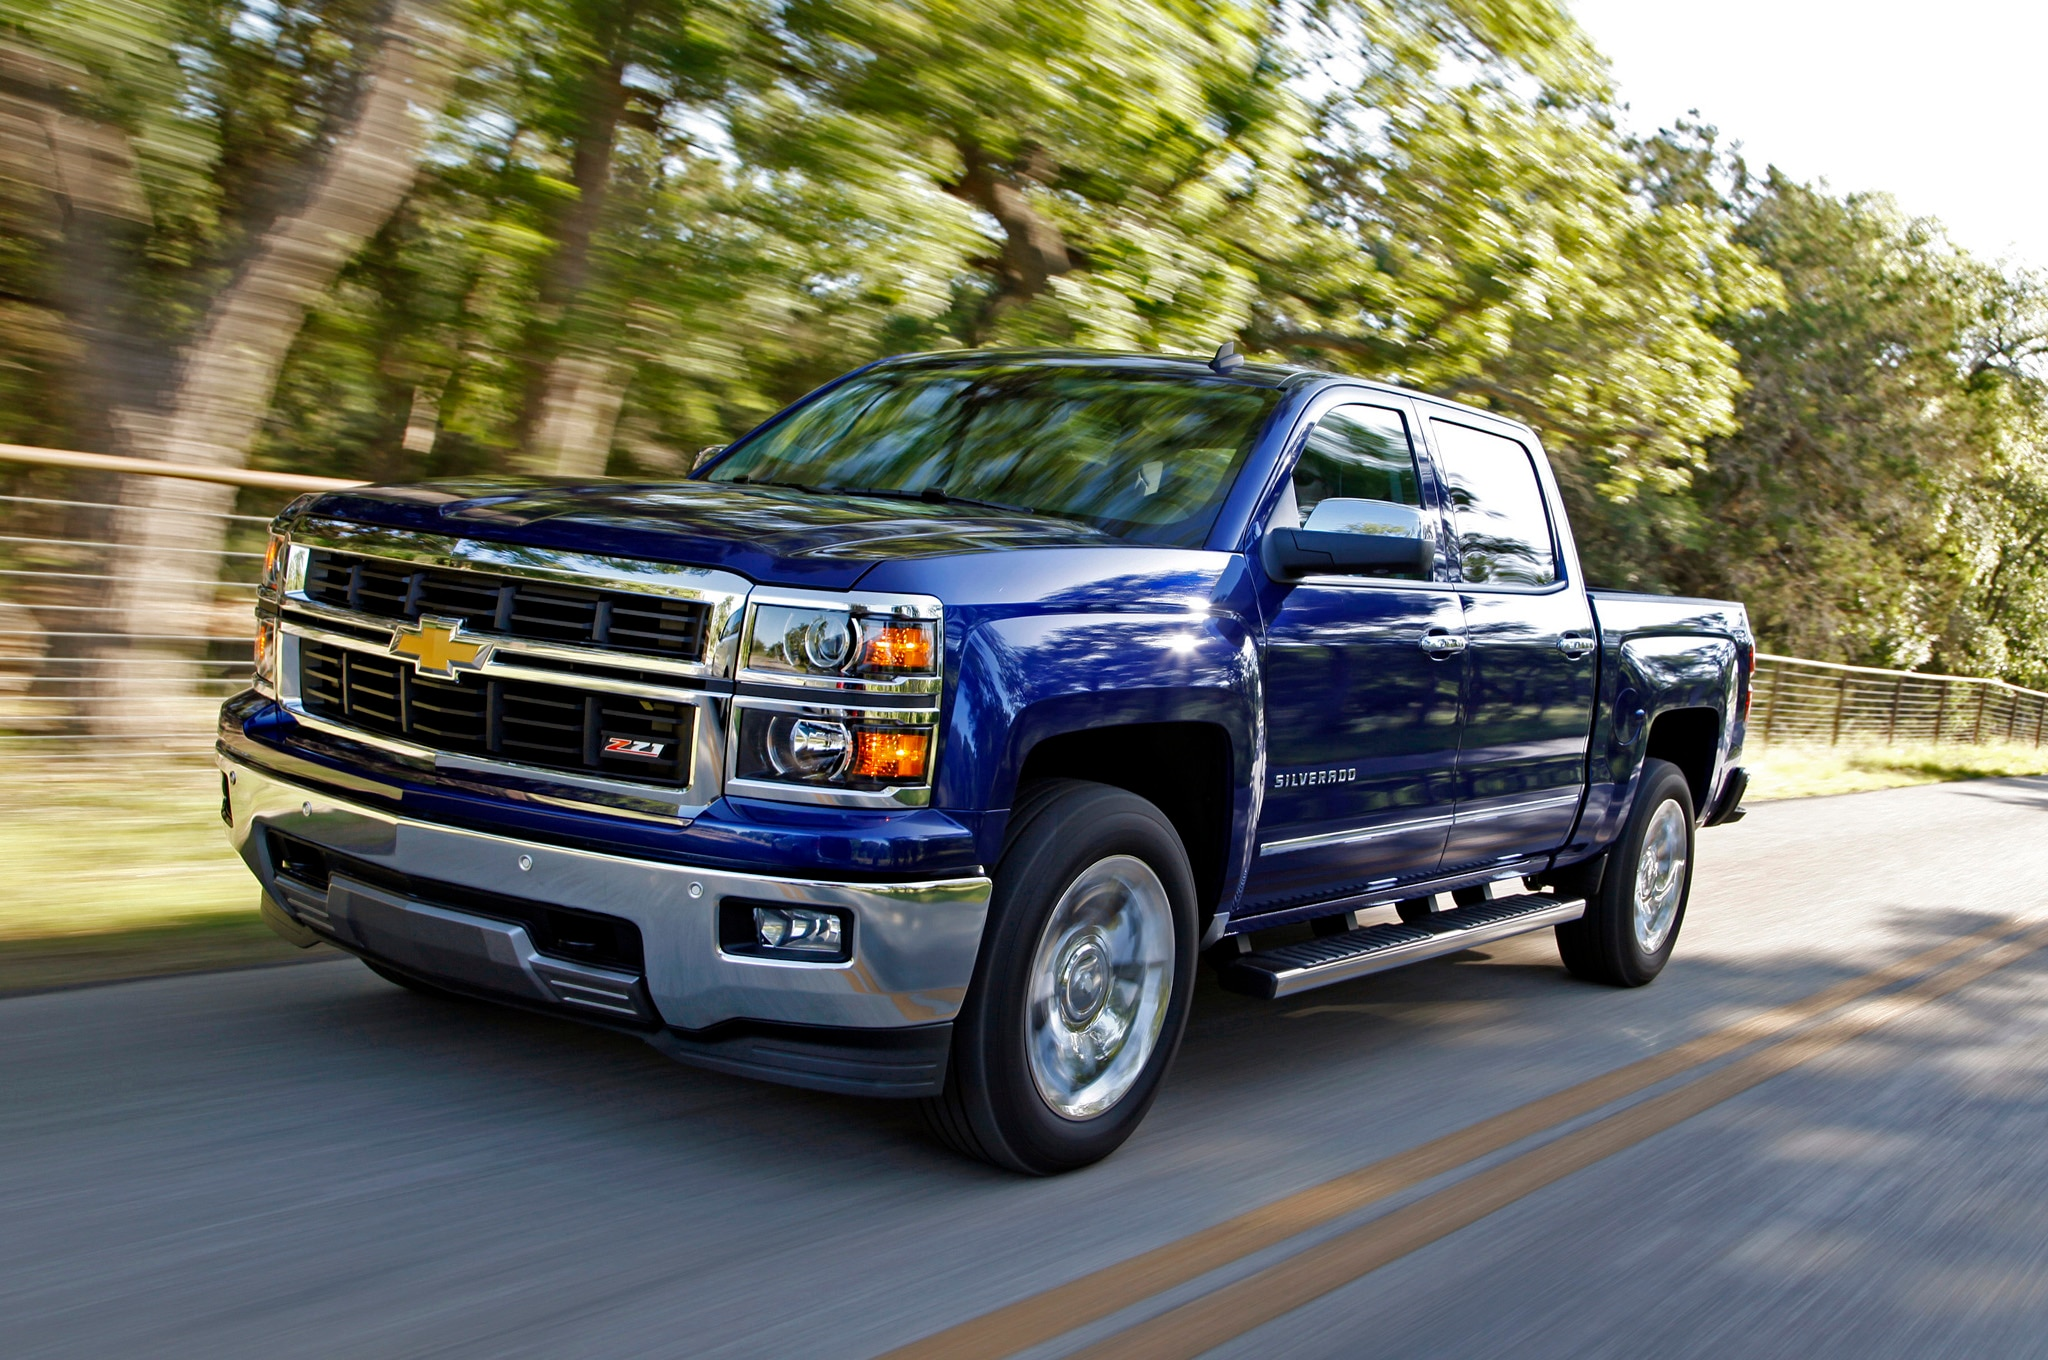 2014 Chevrolet Silverado Ltz Front Three Quarters1